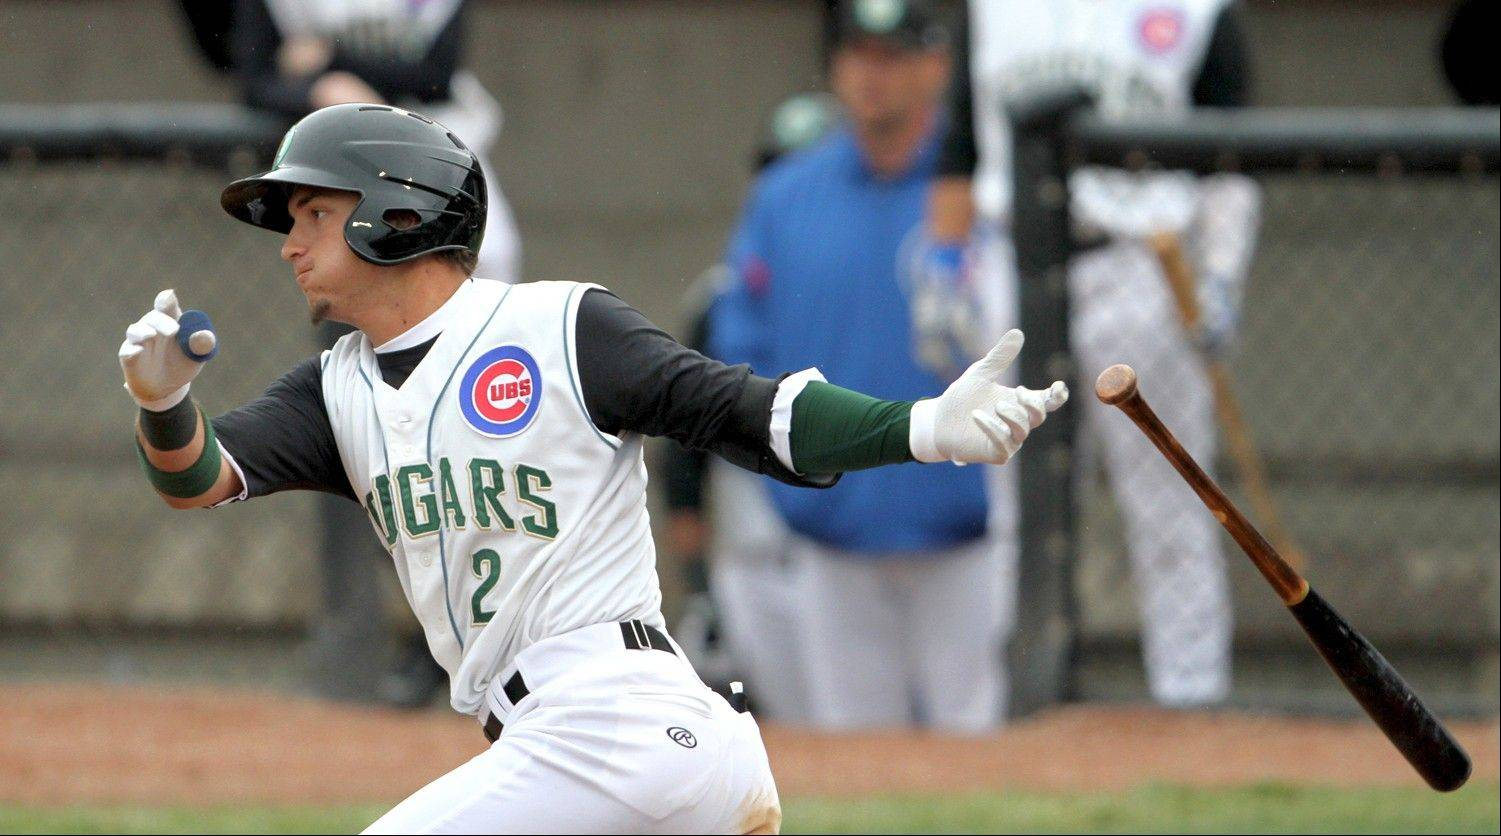 It hasn�t been the best of seasons for the Kane County Cougars, but Cubs prospect Albert Almora and his teammates understand it�s more about player development than wins and losses.